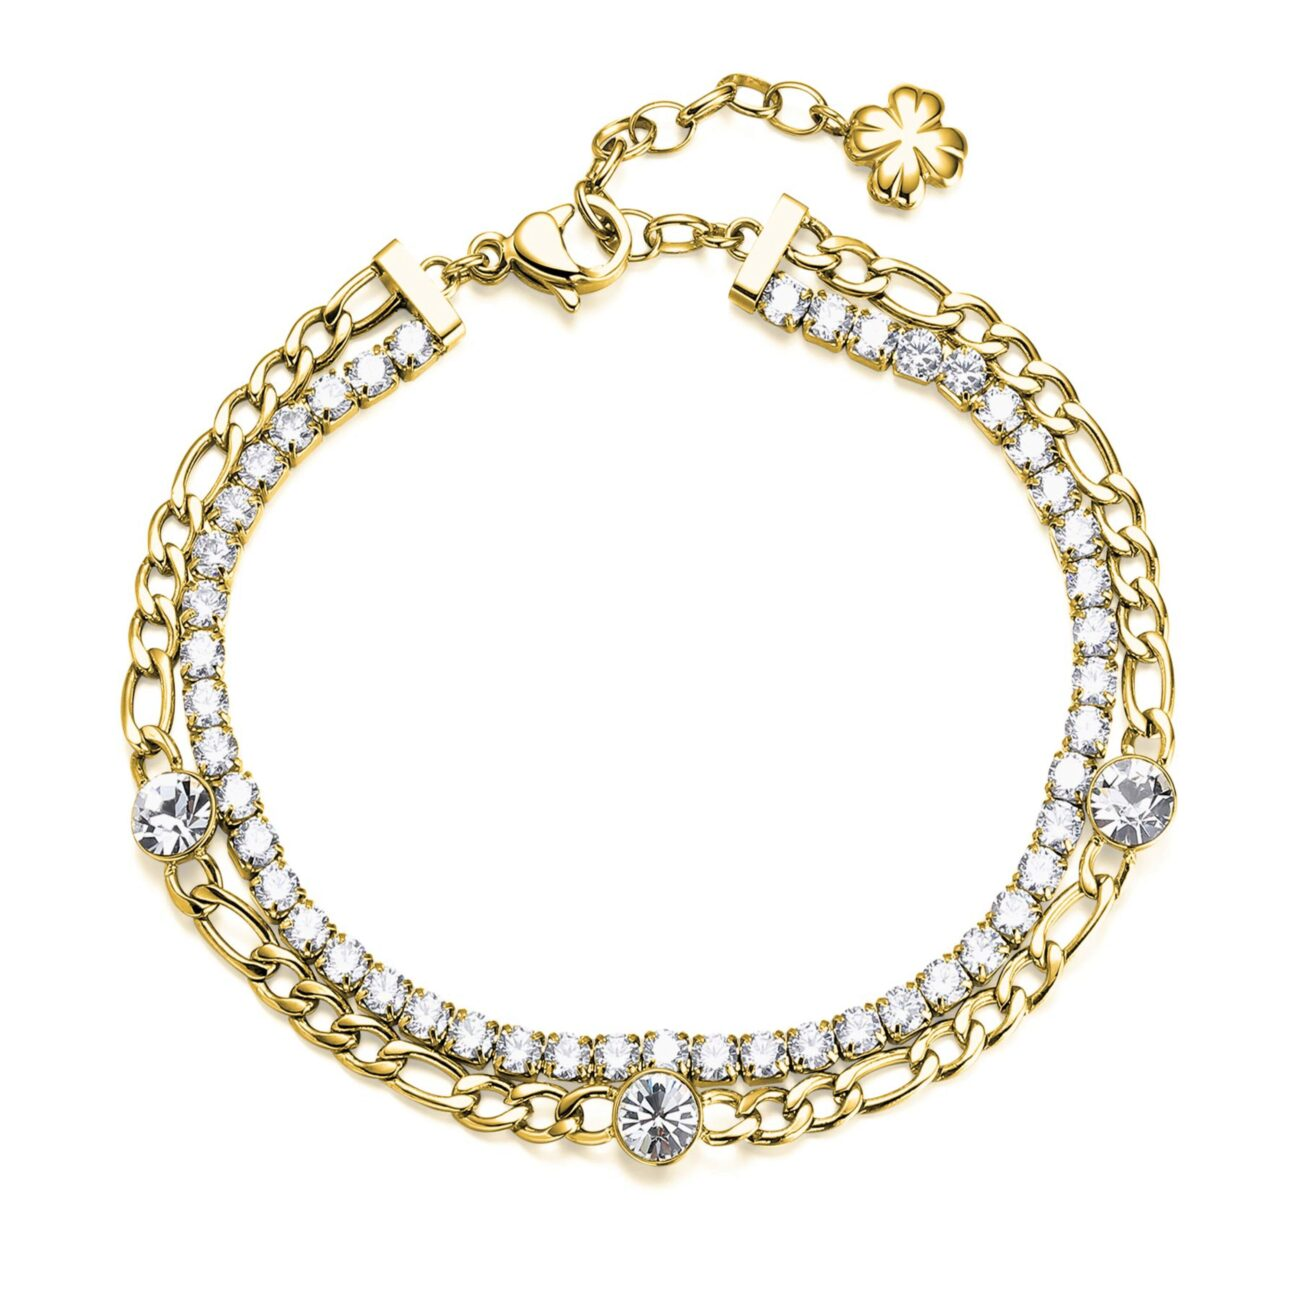 304 stainless steel double tennis bracelet and gold finishes with white cubic zirconia and crystals.